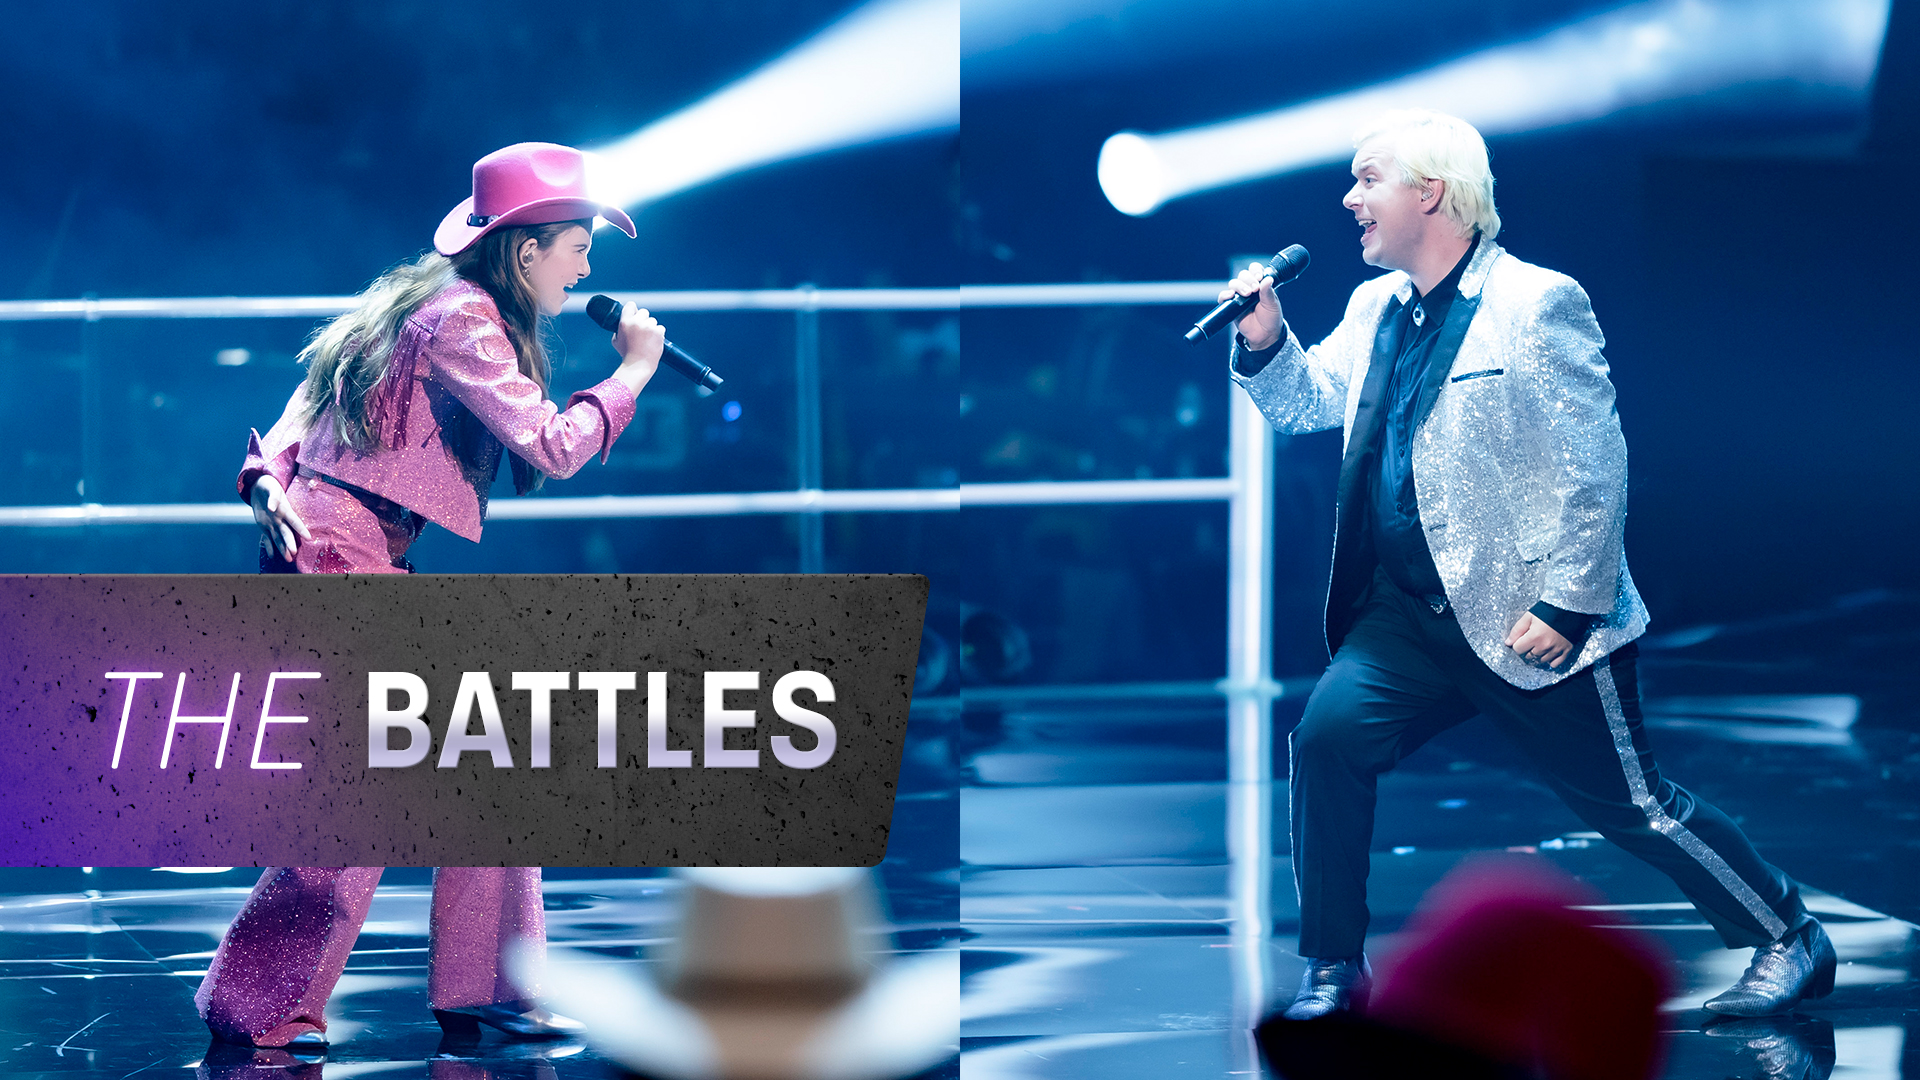 The Battles: Emmagen vs Callum 'Footloose'